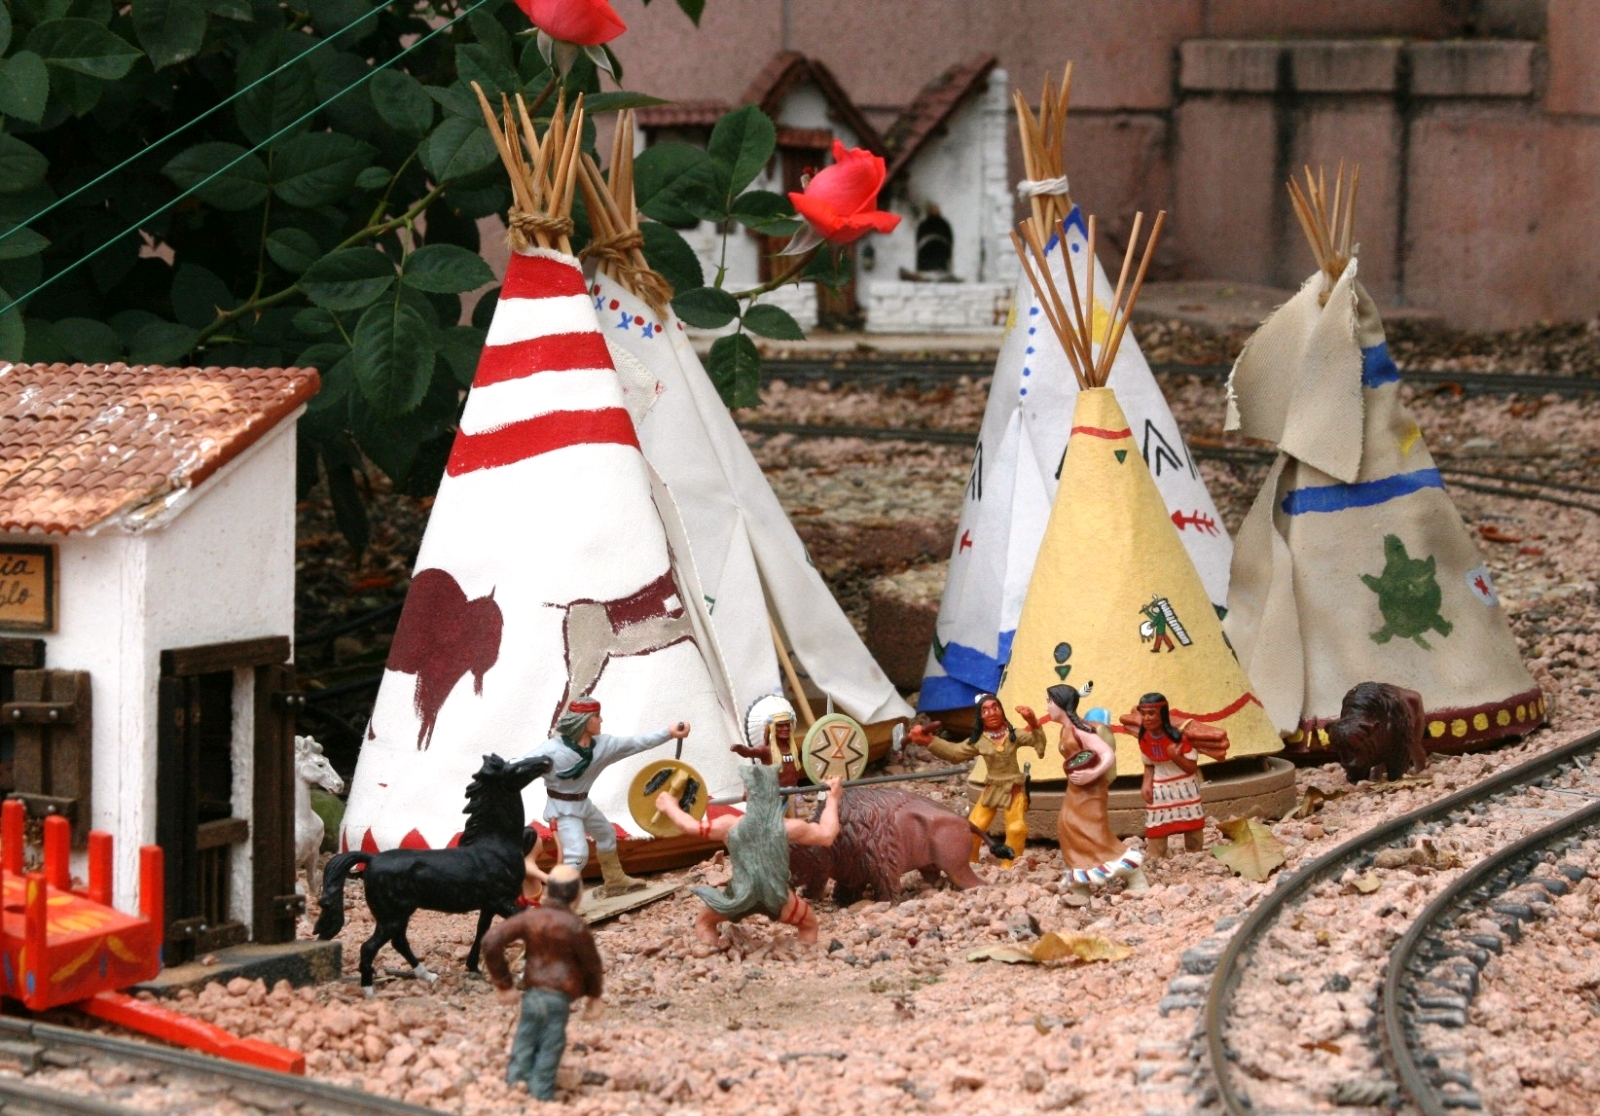 McKinnis These unusual teepees create a great scene!